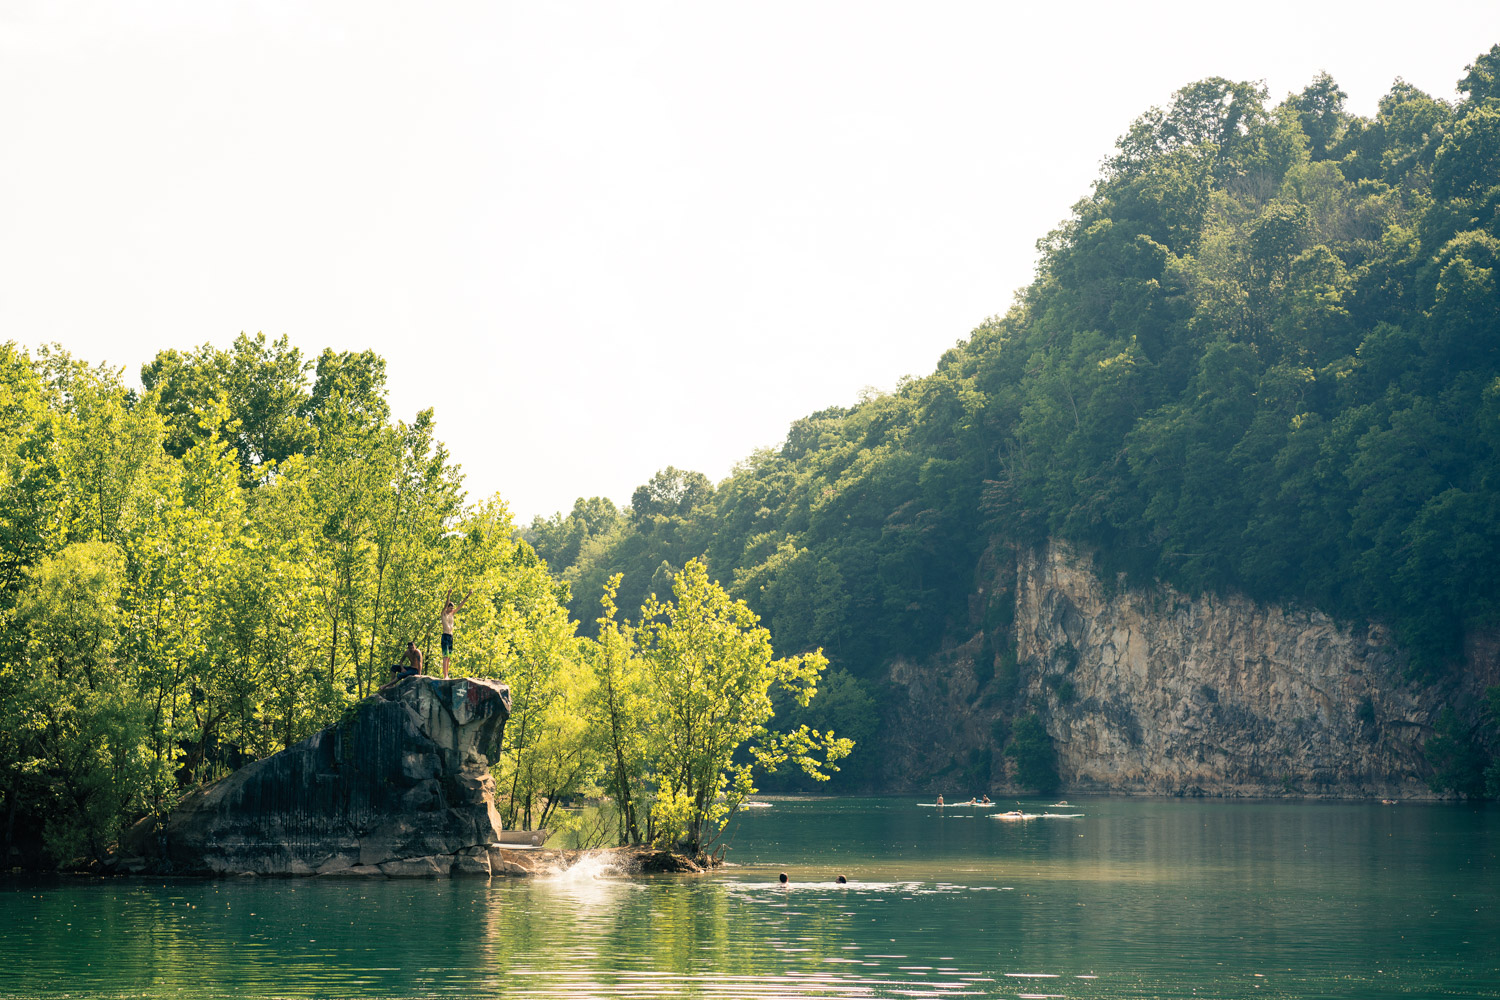 Jumping off the rock at Mead's Lake Quarry.